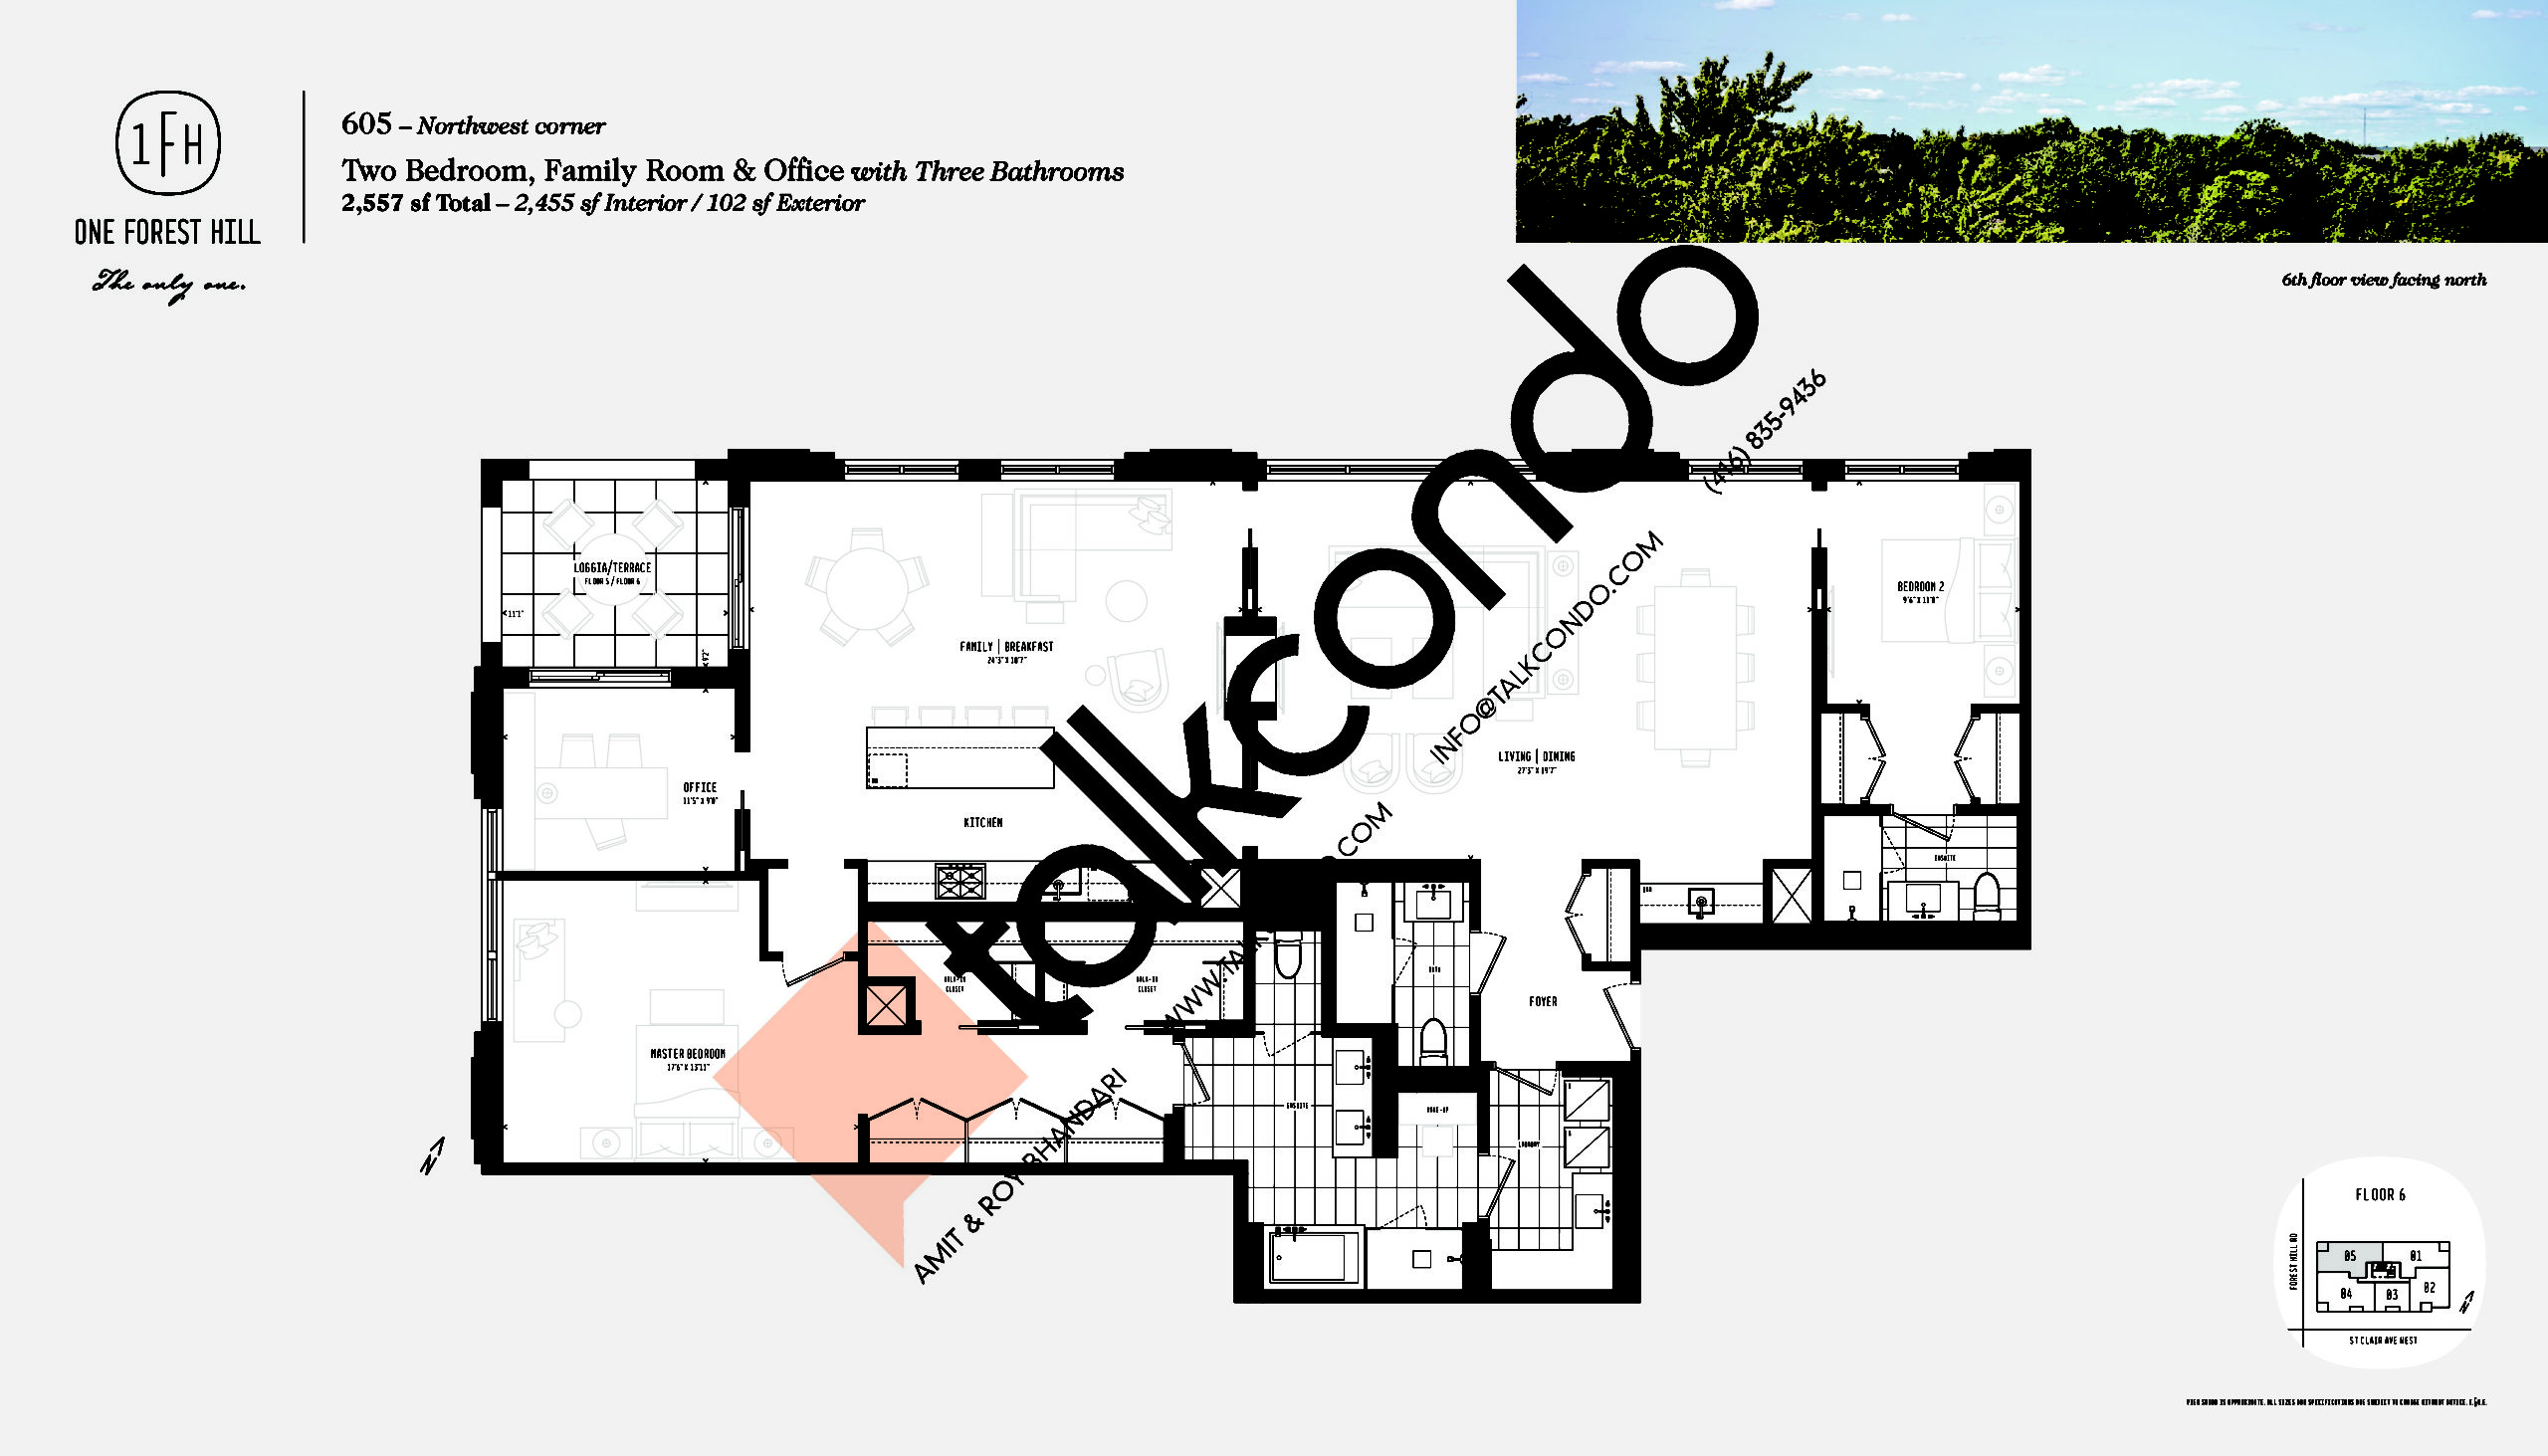 605 Floor Plan at One Forest Hill Condos - 2455 sq.ft